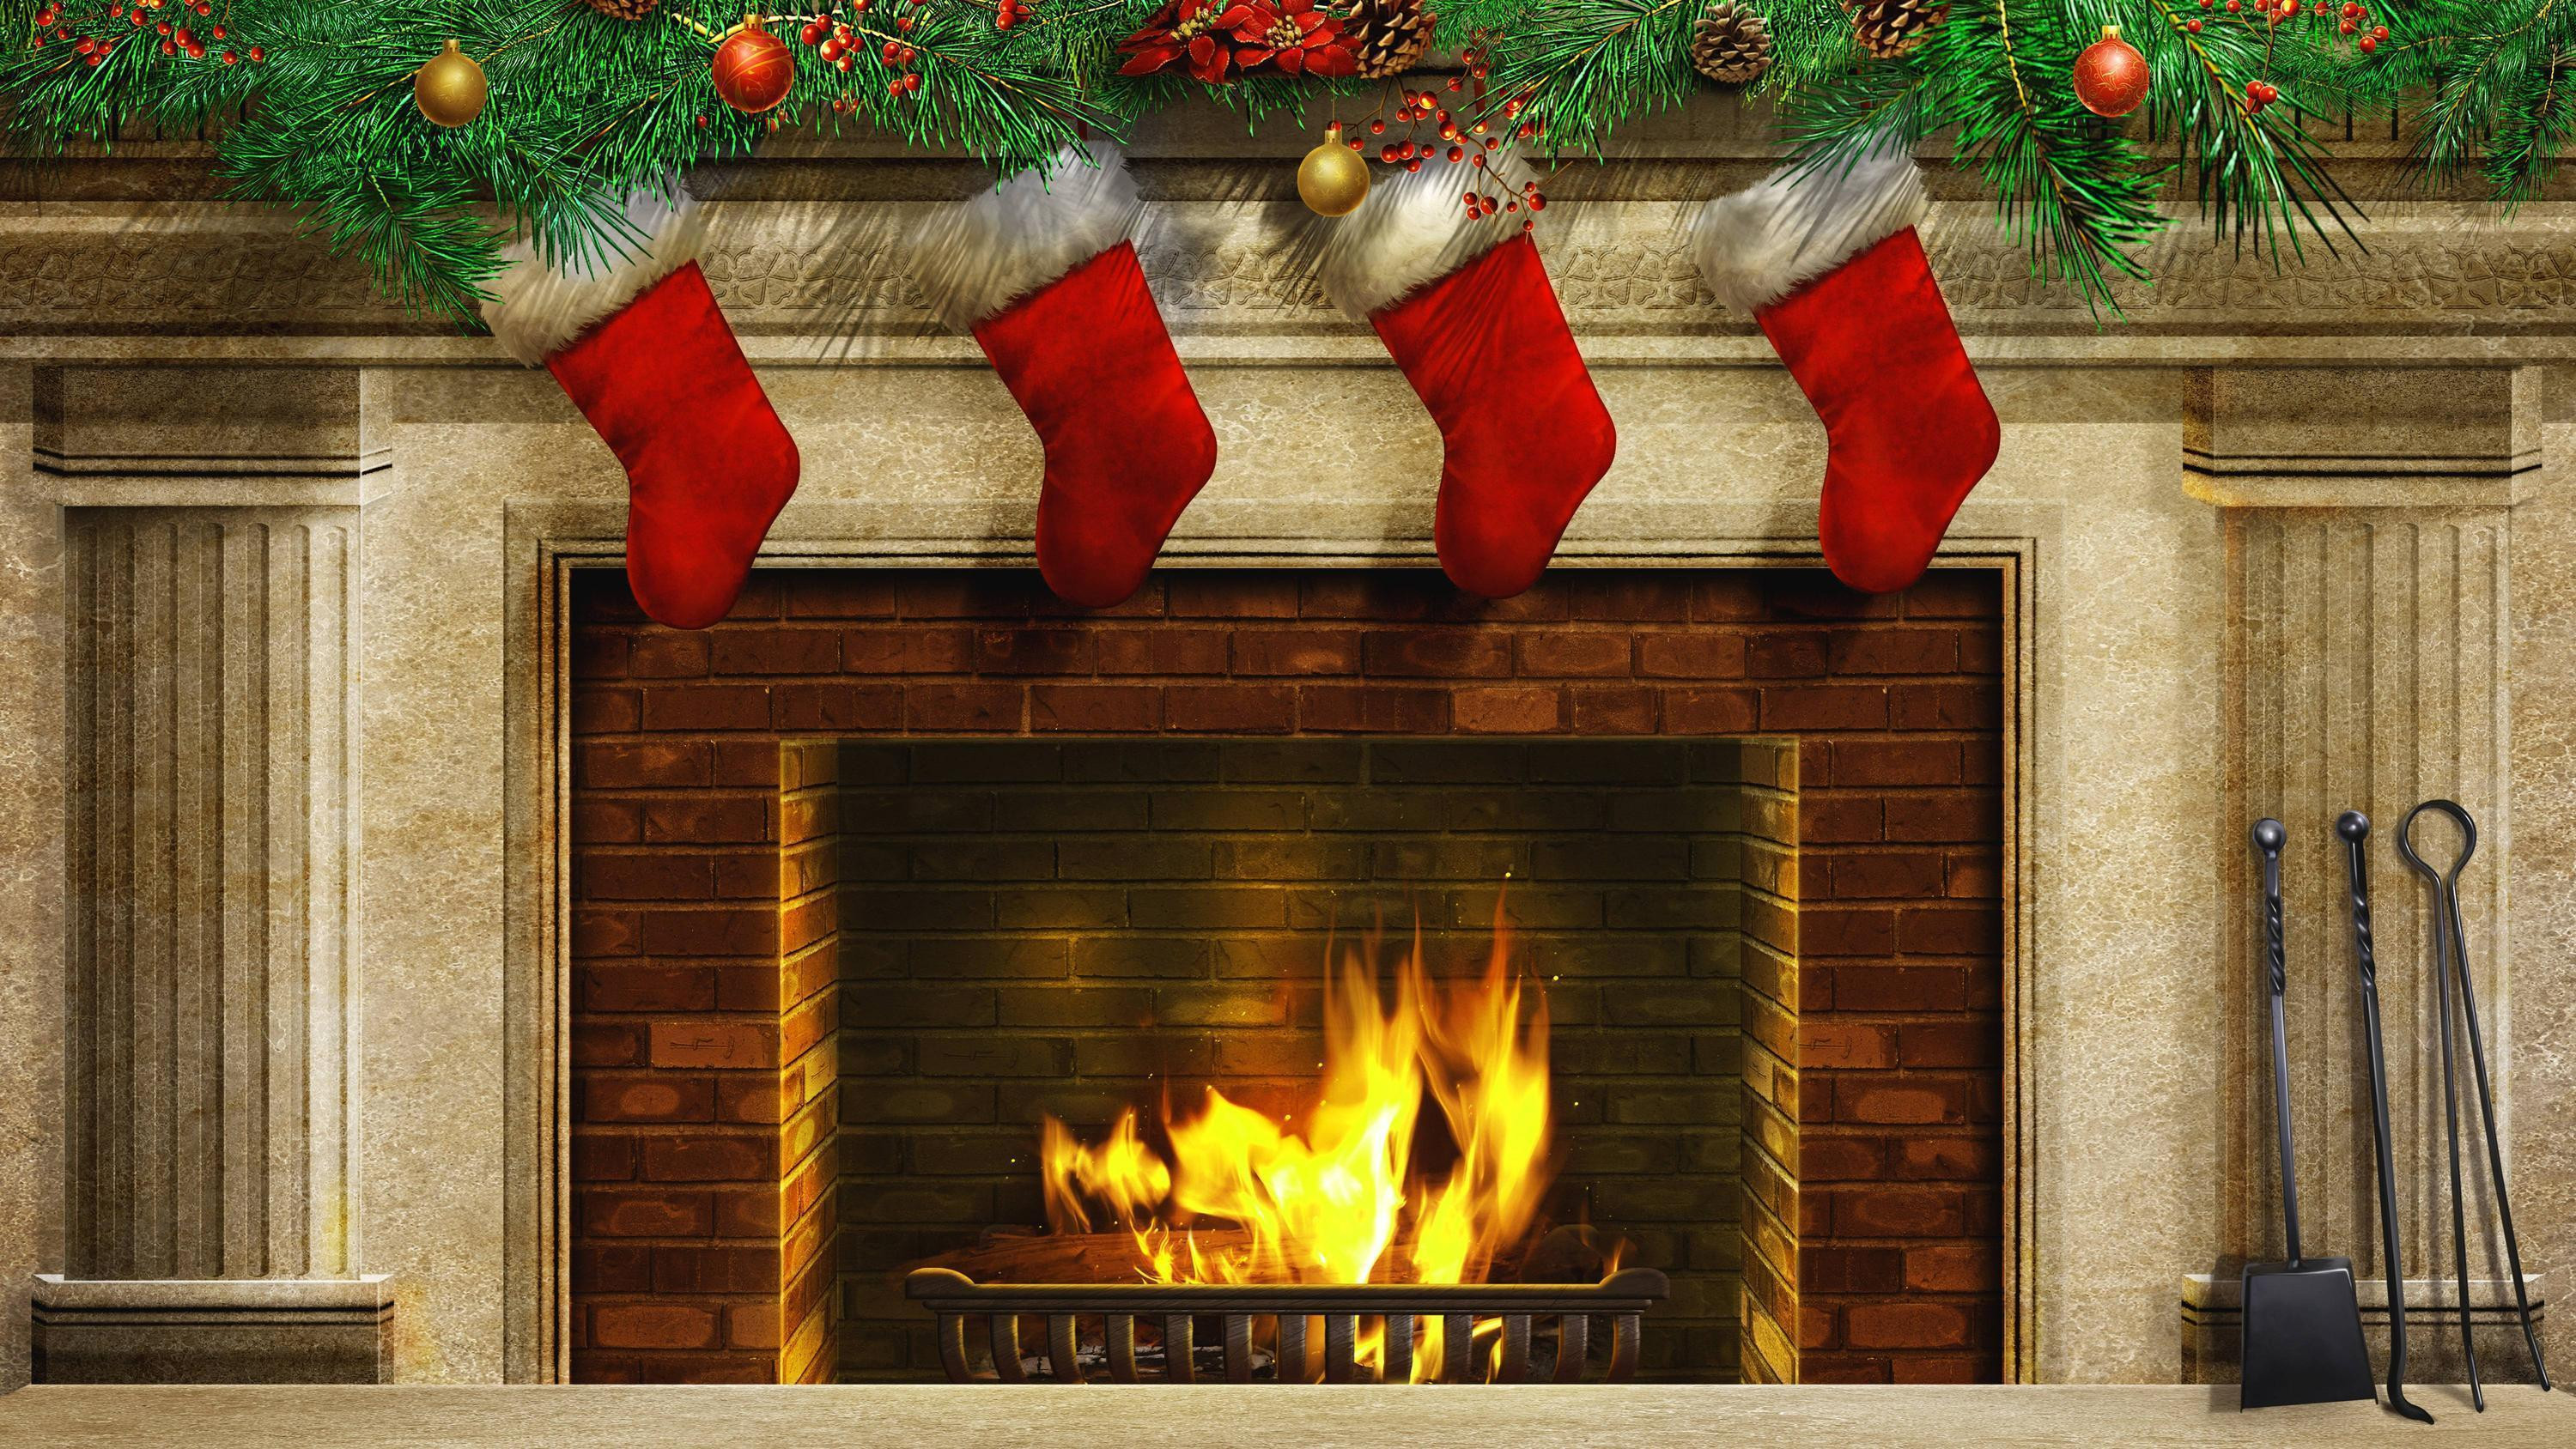 Christmas Sock Fireplace  Christmas Fireplace Backgrounds Wallpaper Cave